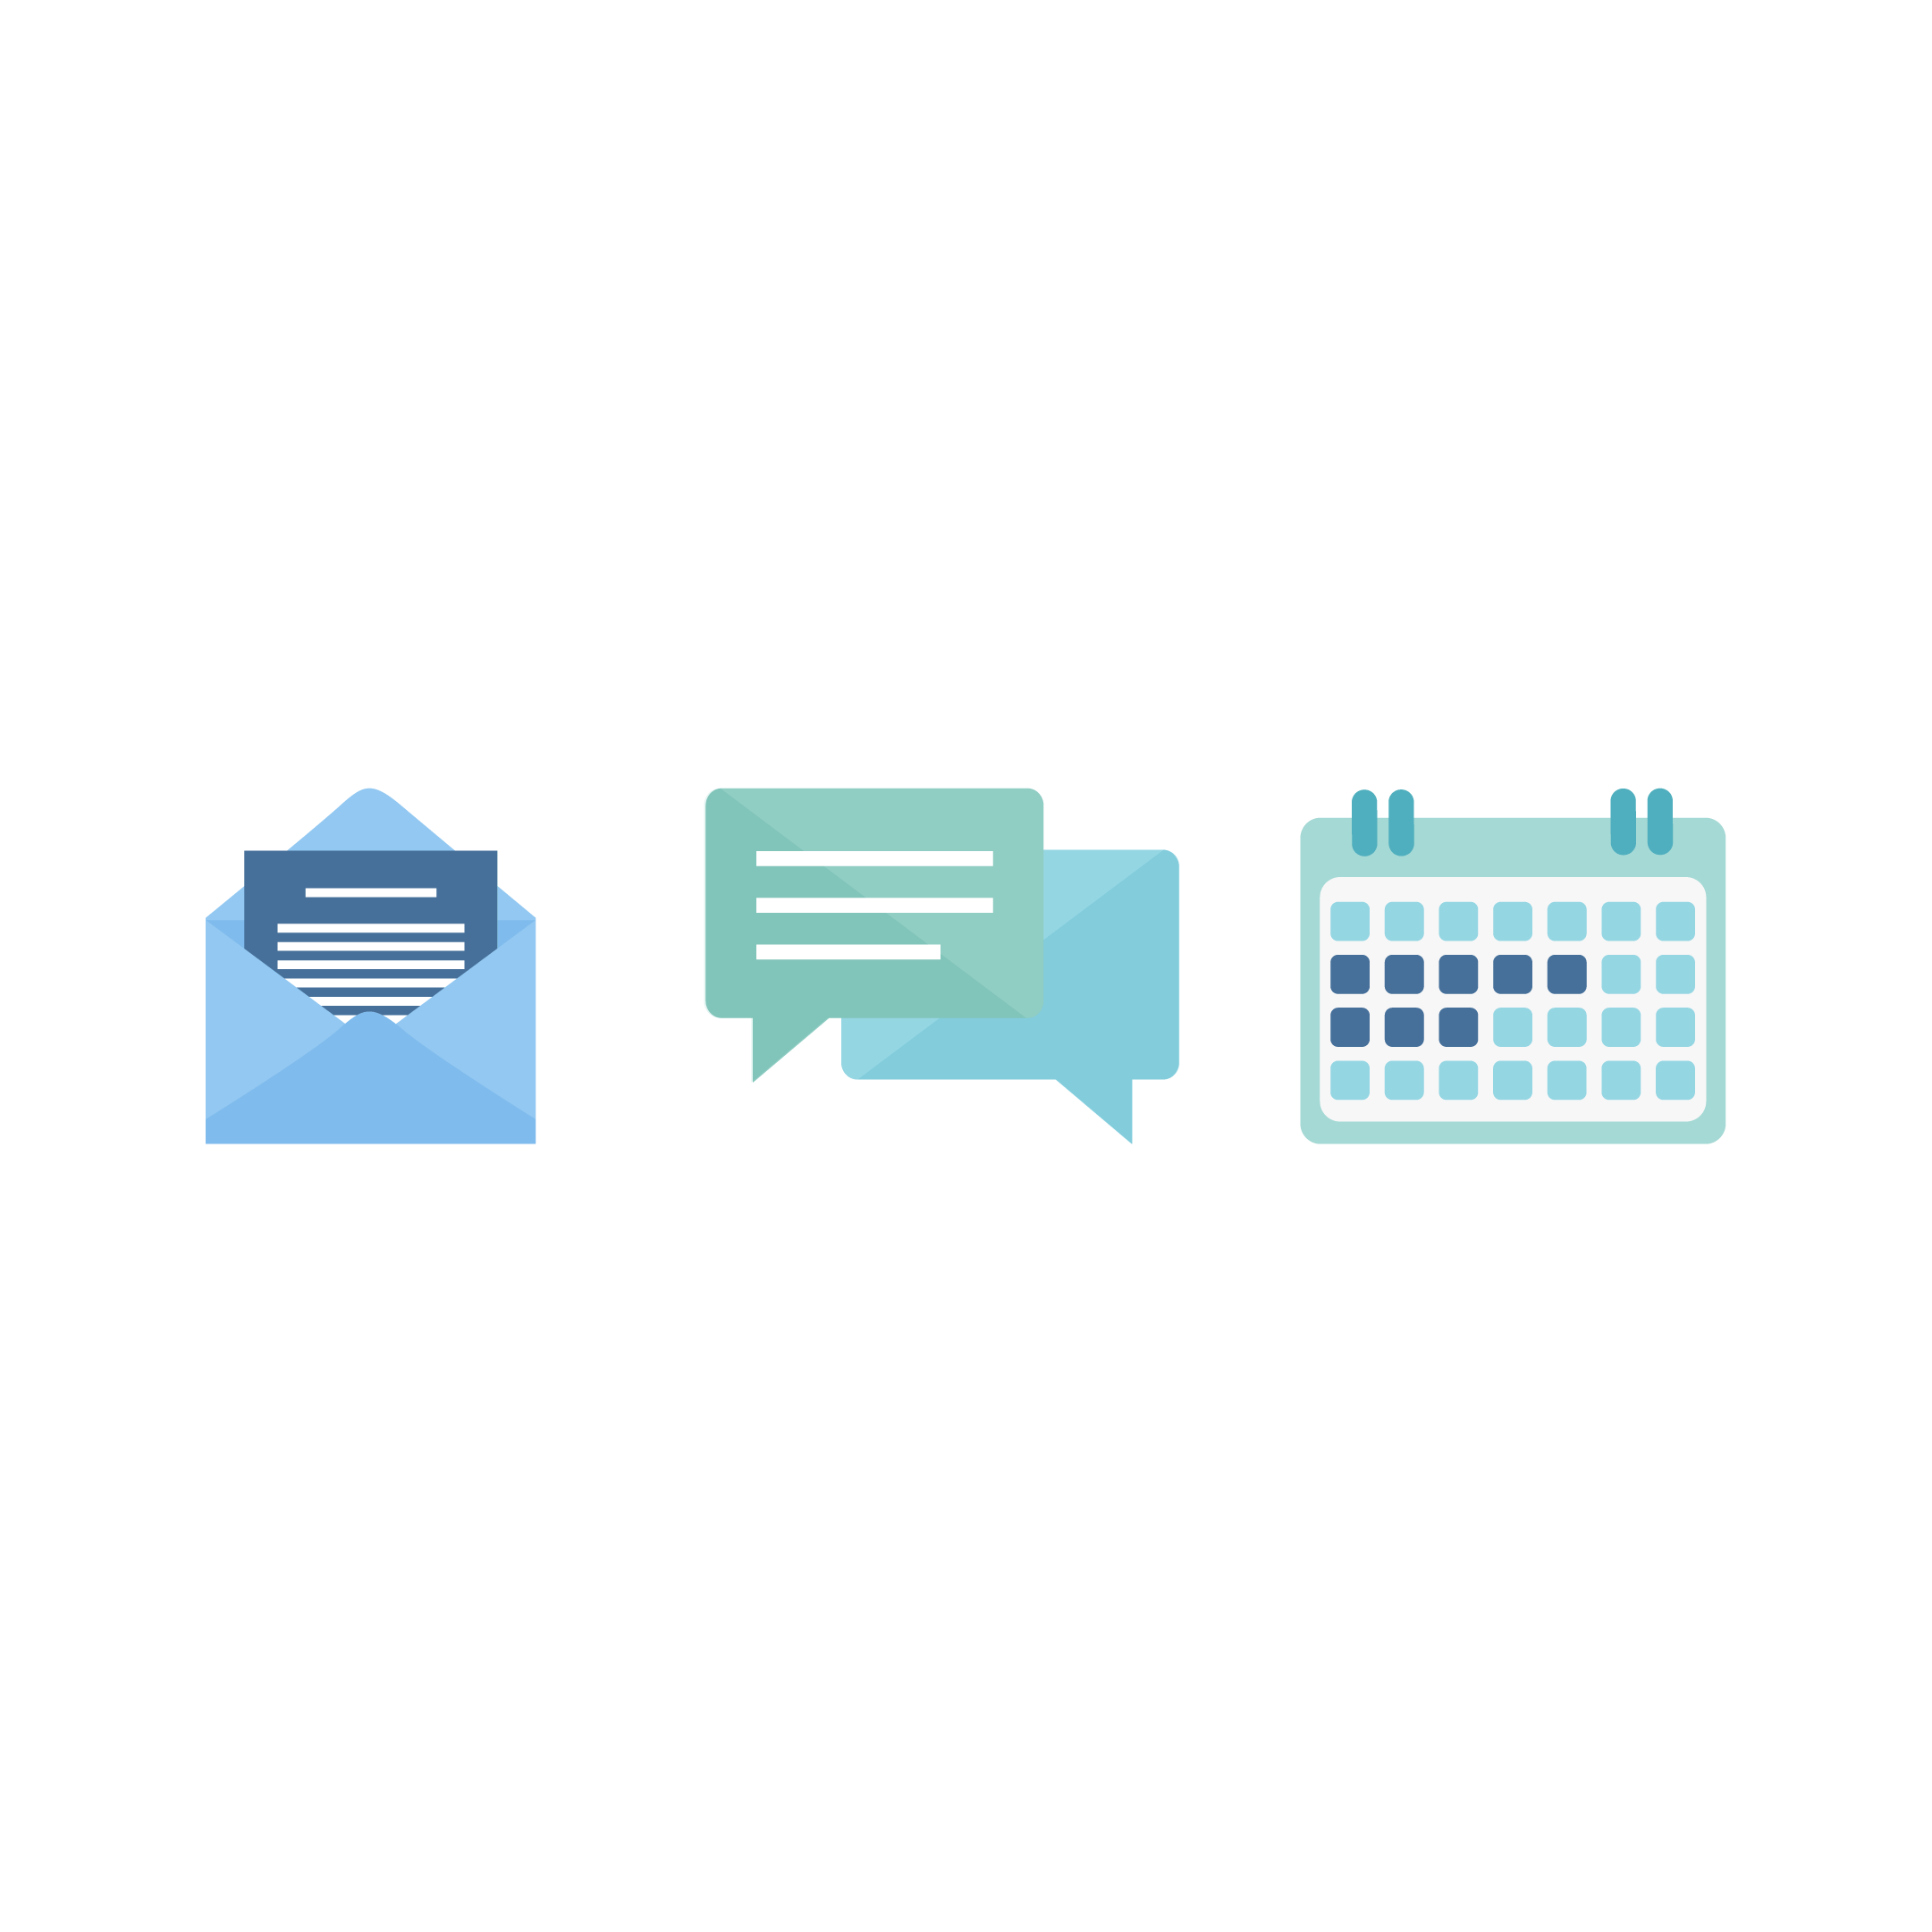 Vector illustration of three icons: design inquiry (open envelope), the chat (speech balloons) and booking the project (calendar) in flat design style